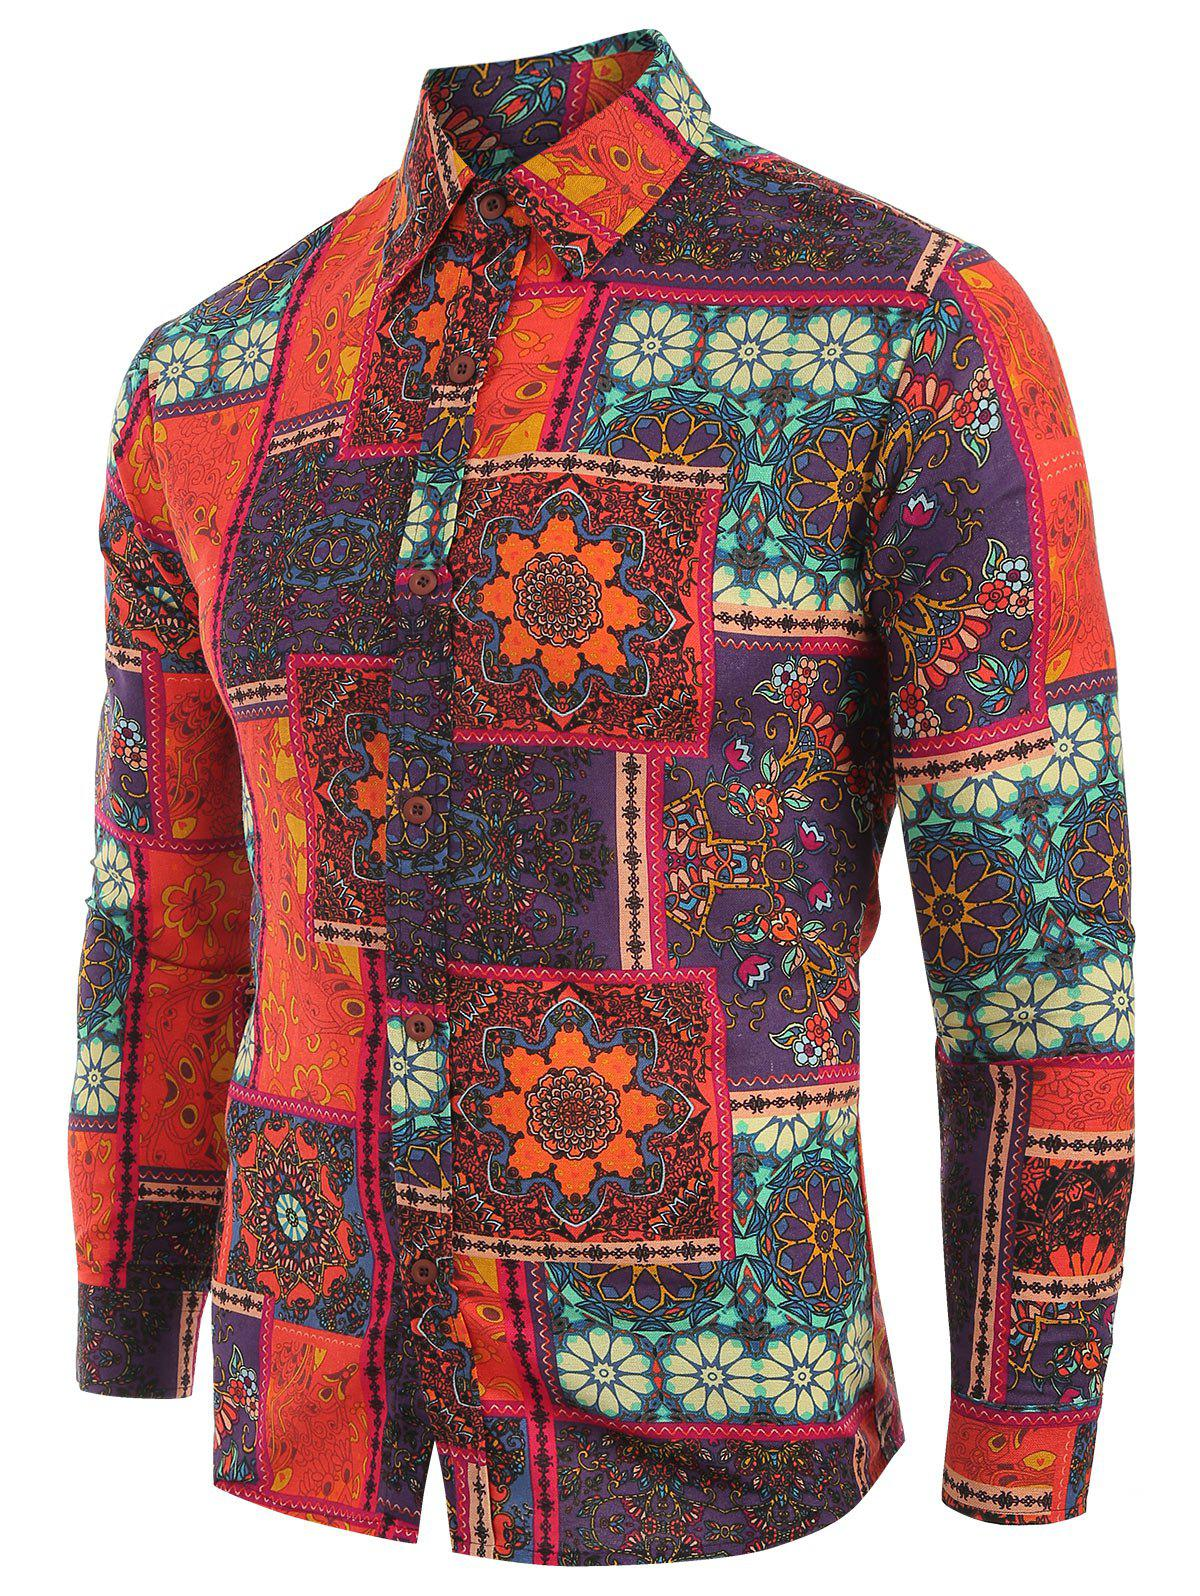 Ethnic Tribal Flowers Print Casual Shirt - multicolor S